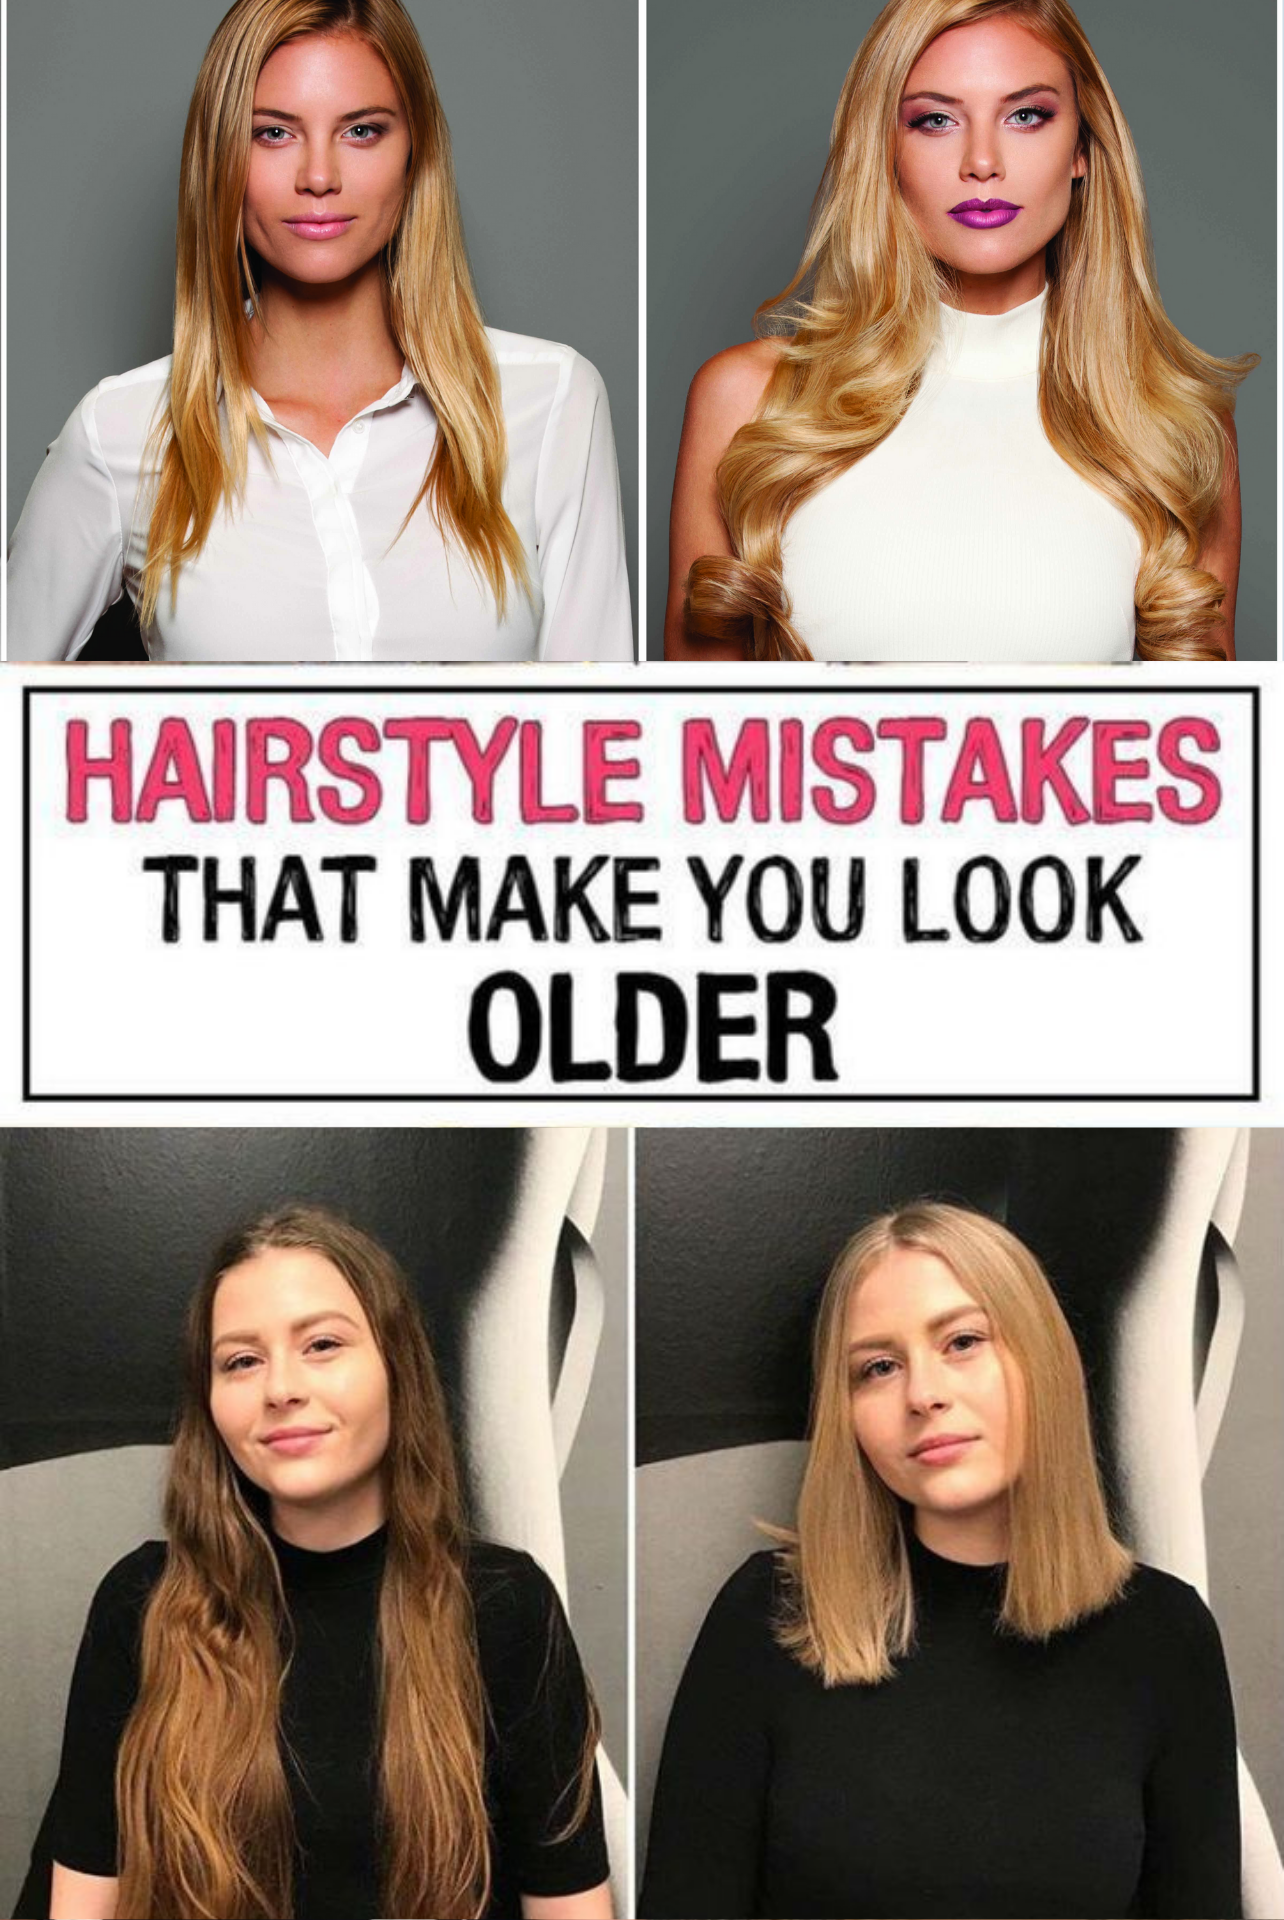 17 Hairstyle Mistakes That Are Aging You In 2020 Hair Advice Hair Mistakes Hairstyle